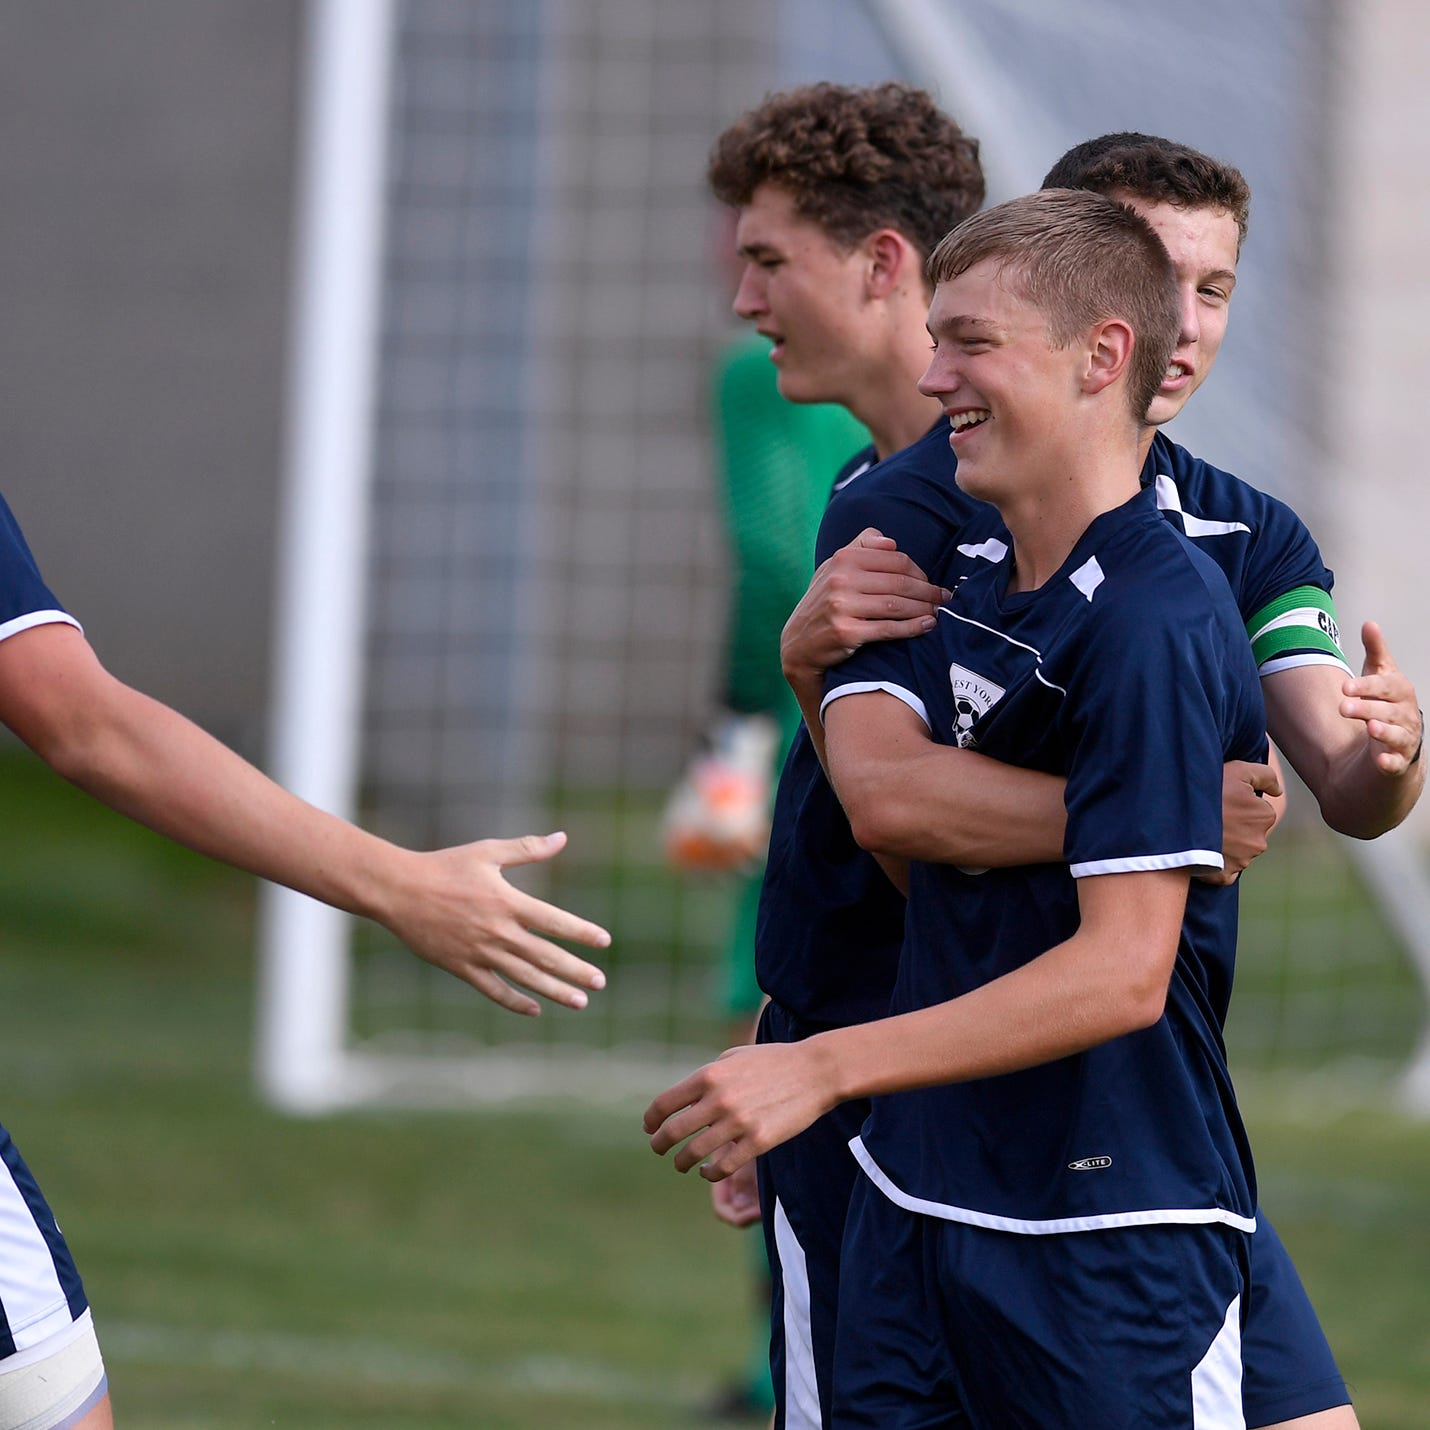 Soccer roundup, Thursday, Sept. 20: West York boys top Susquehannock, now tied for first